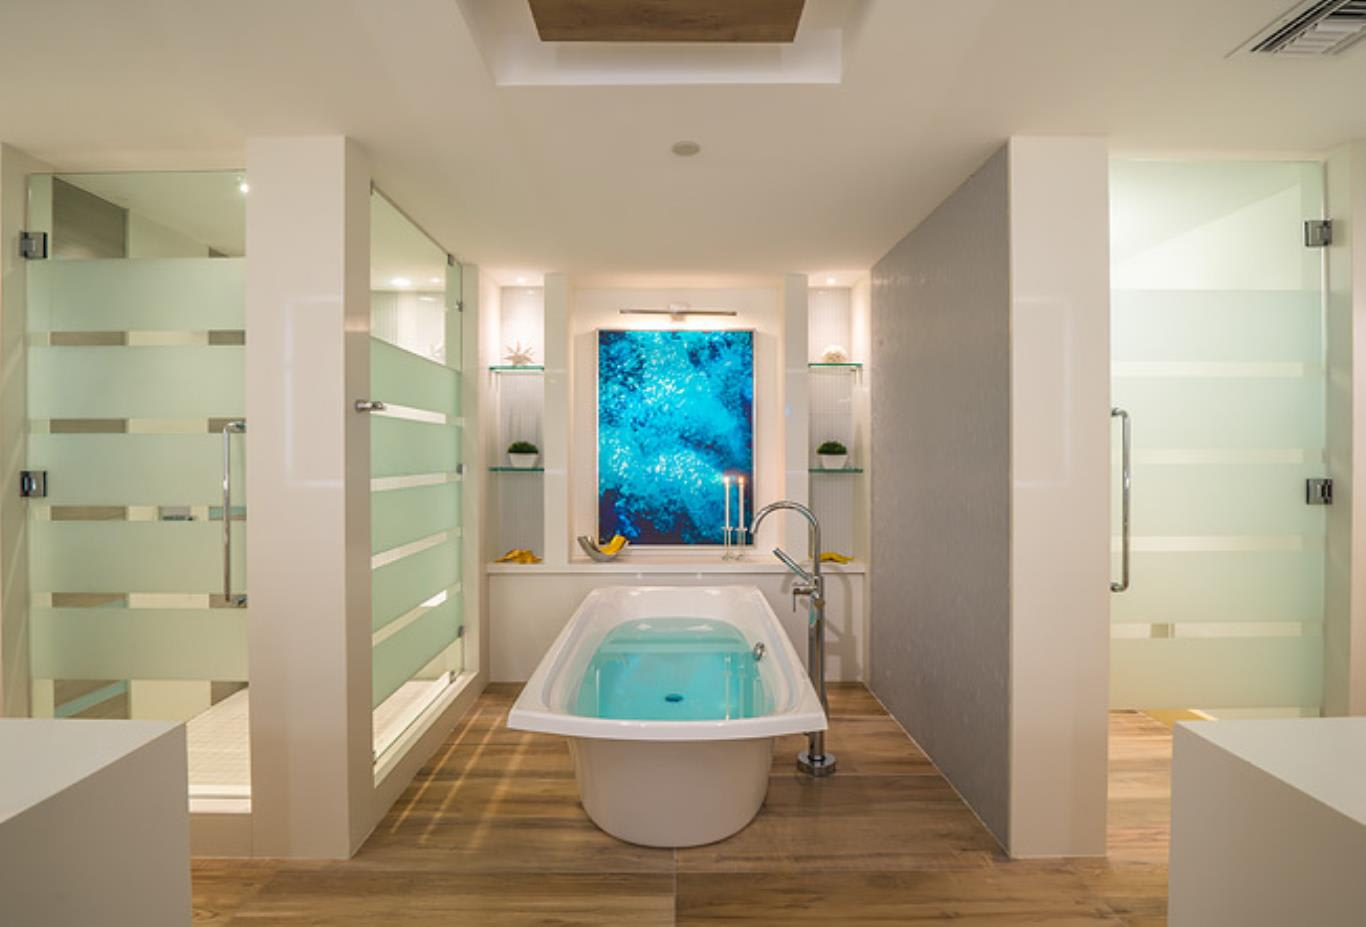 BSKY Beachfront One Bedroom Skypool Butler Suite with Balcony Tranquillity Soaking bathroom